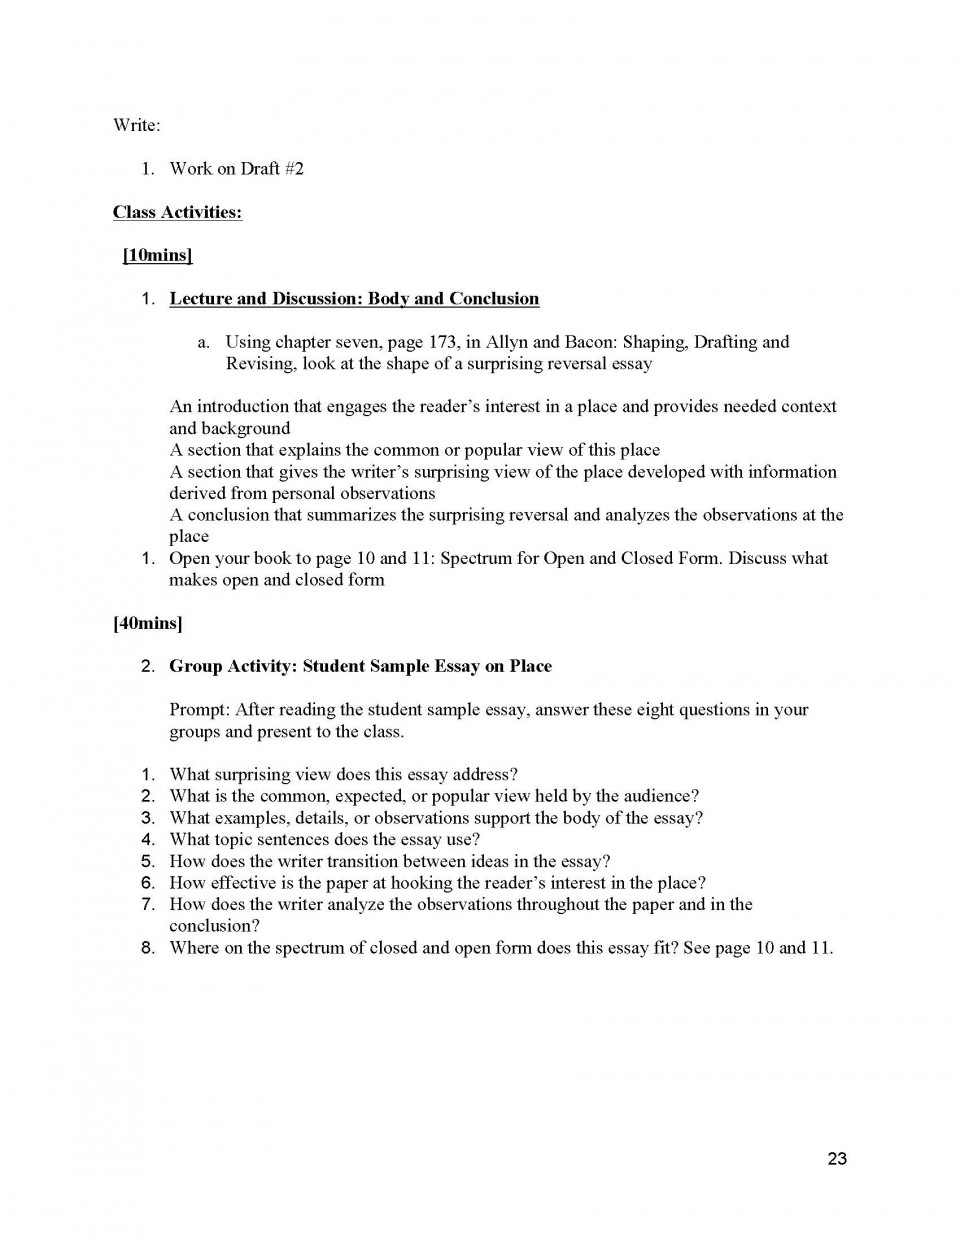 024 Informative Essay Topics Unit 2 Plans Instructor Copy Page 23 Remarkable For High School 4th Grade Expository 960